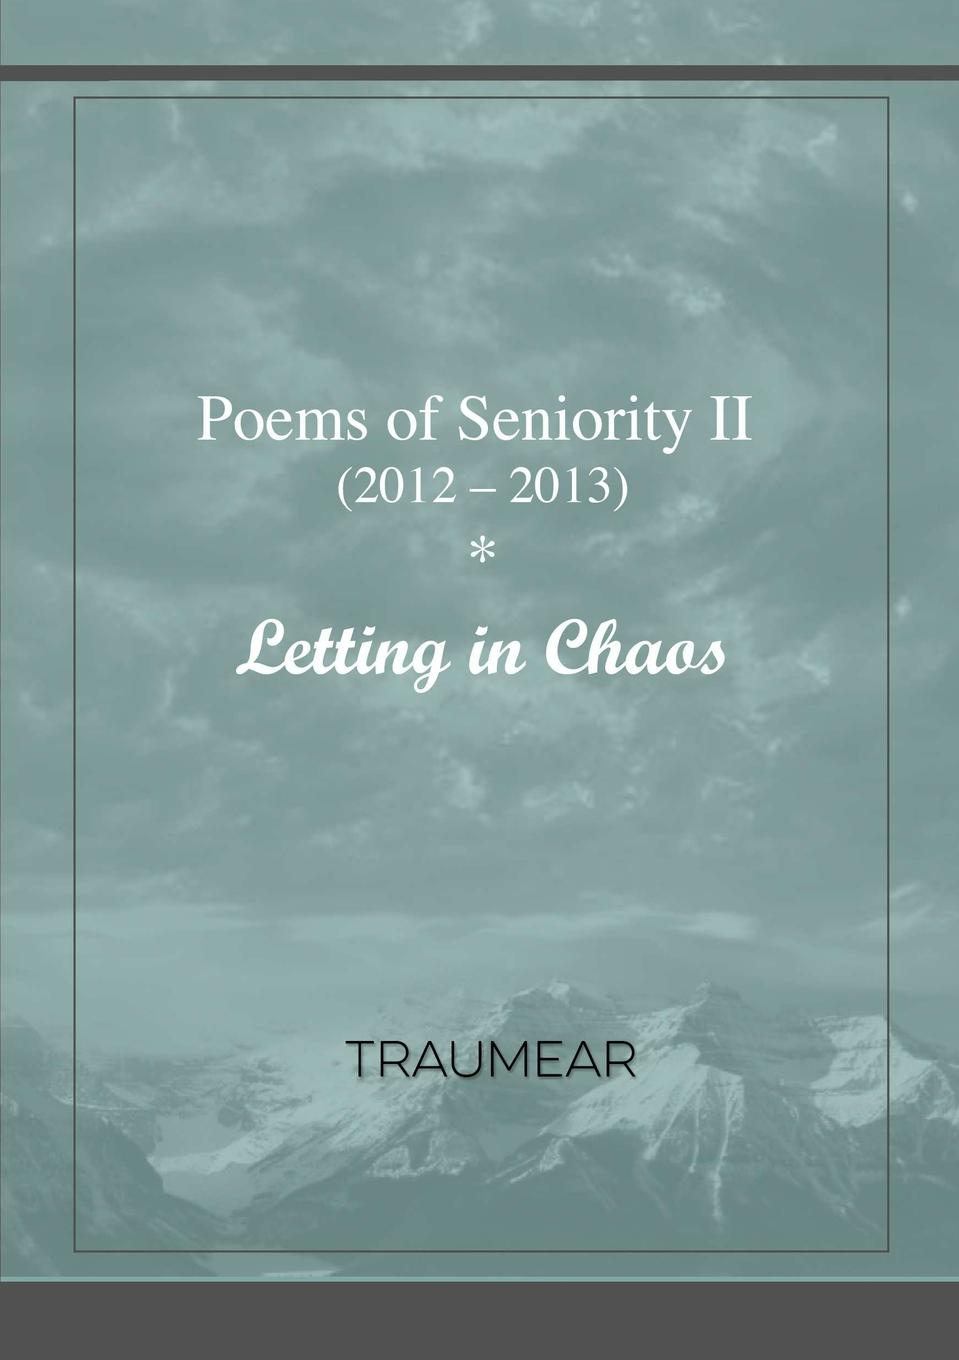 Traumear Poems of Seniority II - Letting in Chaos цены